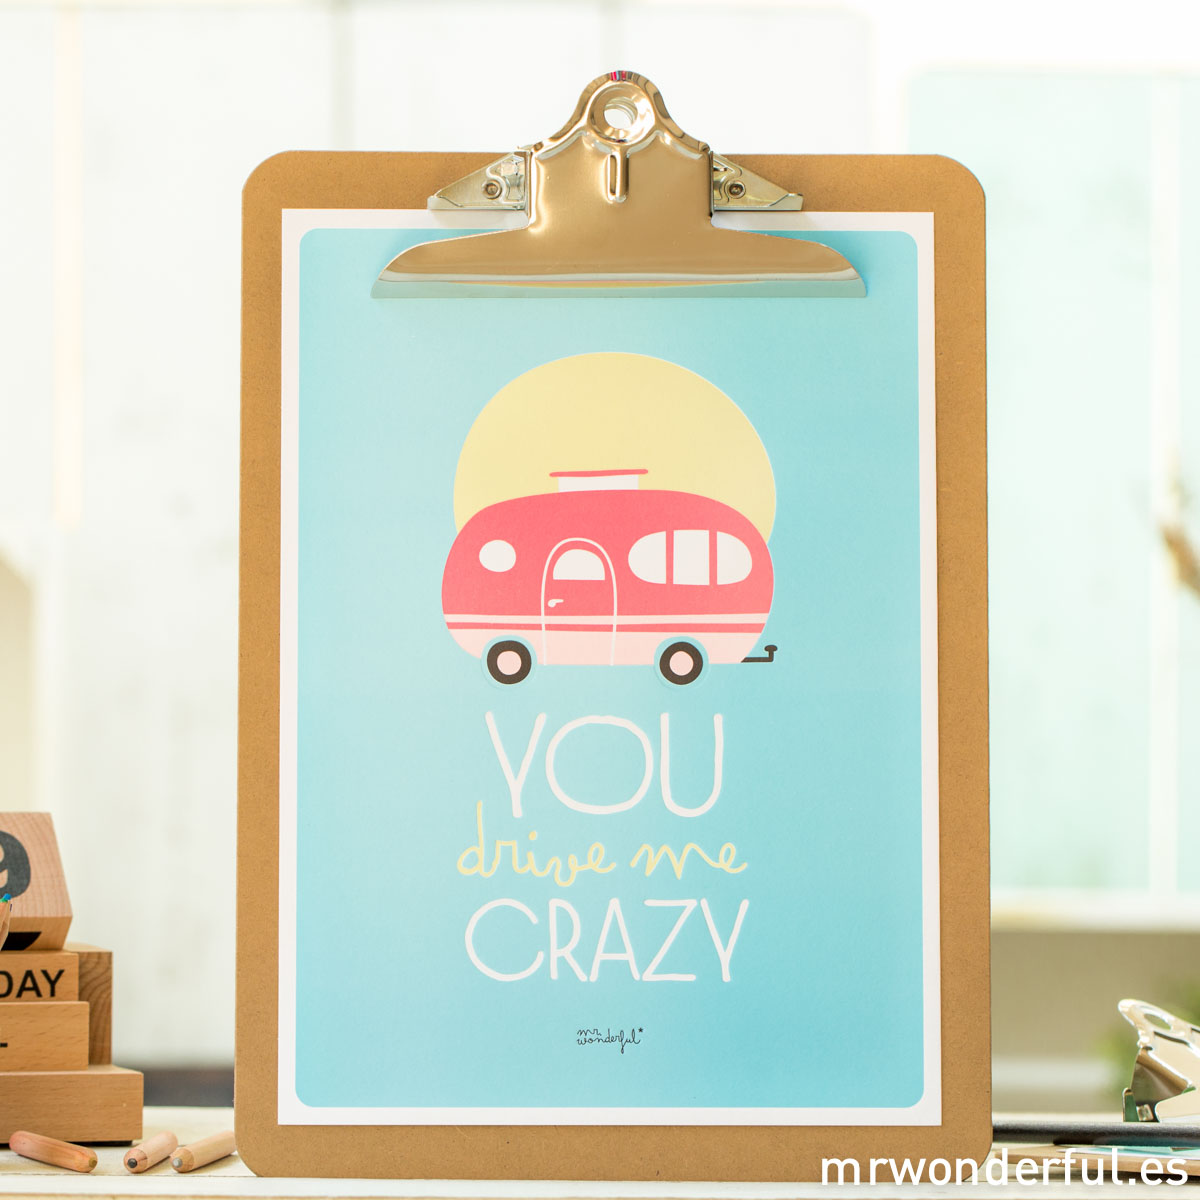 mrwonderful_LAM-SUMMER-01_lamina-you-drive-me-crazy-1